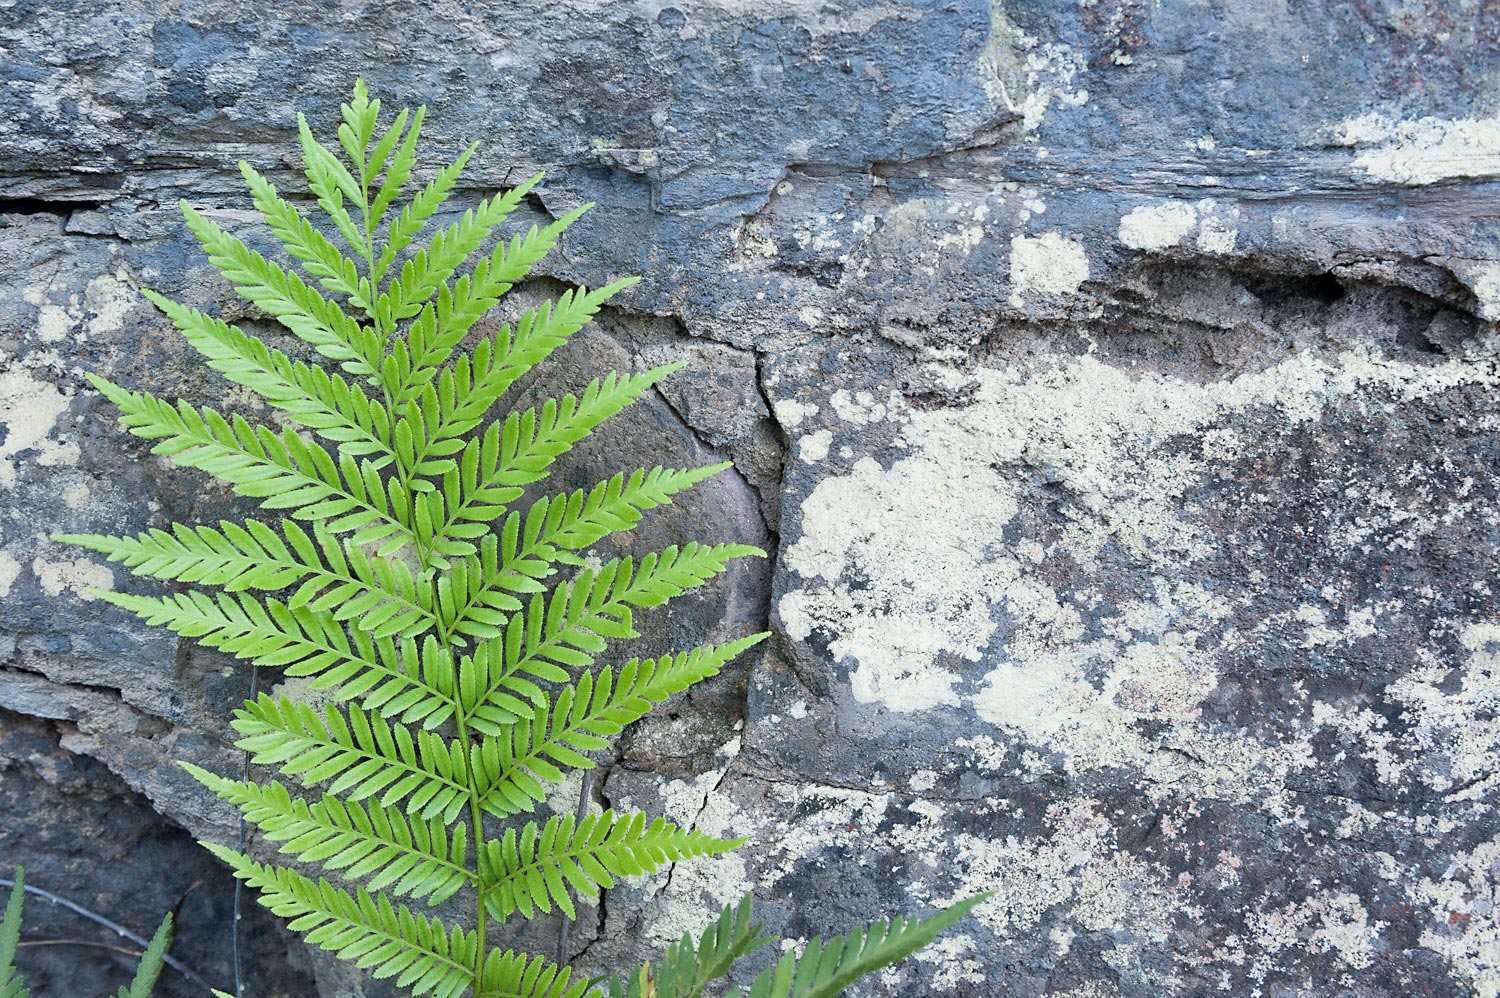 Warren-Hinder-LR-National-Pass-Fern-study-with-rock-shelf-sandstone.jpg